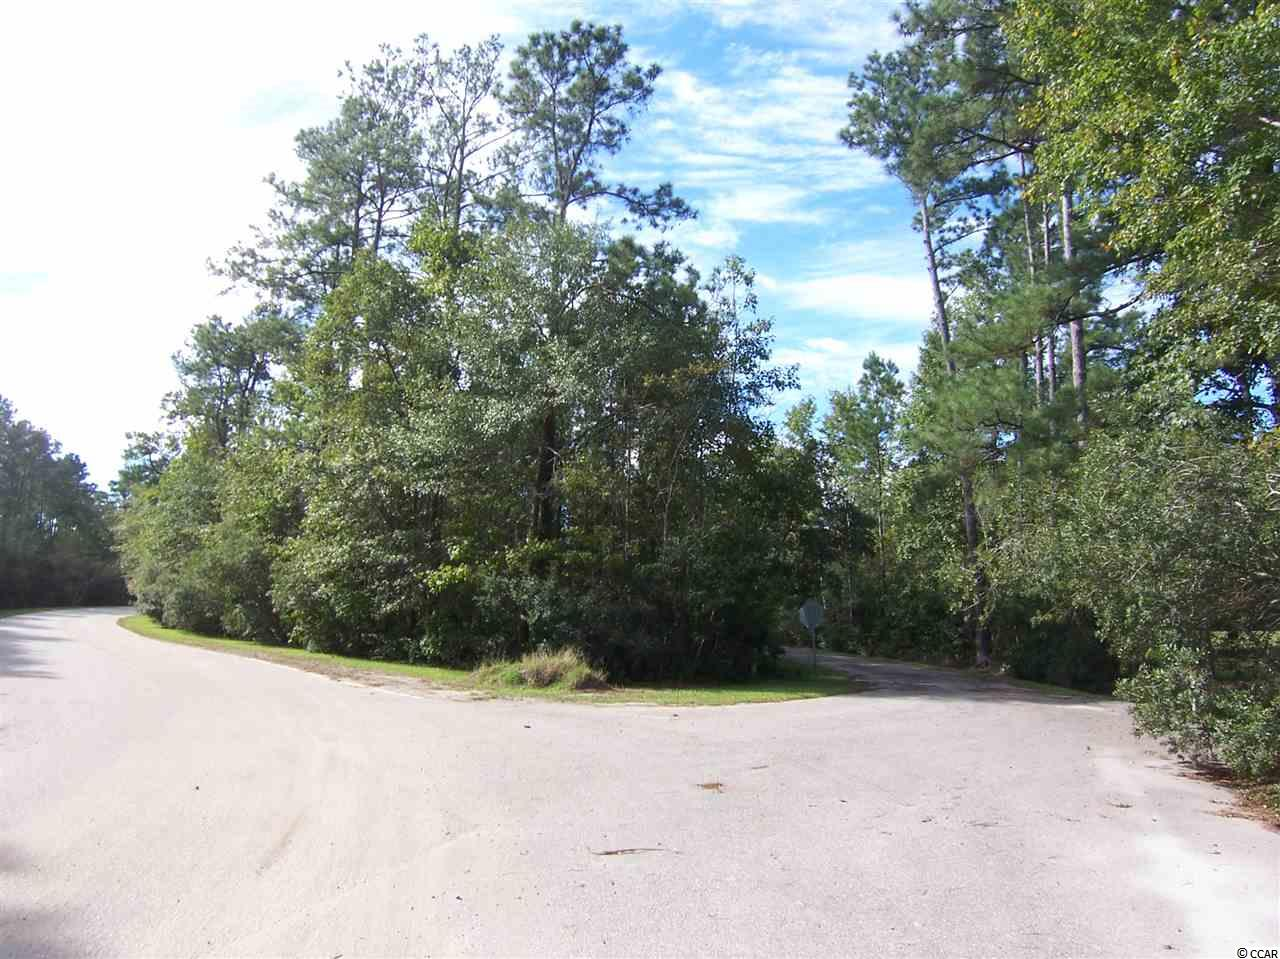 Land for sale in Myrtle Beach/Socastee area. Convenient to Rt 544 and Rt 31. Parcel of 2 lots totaling 1.35 acre, zoned residential. Short drive, about 8 miles to beaches. Make an offer!